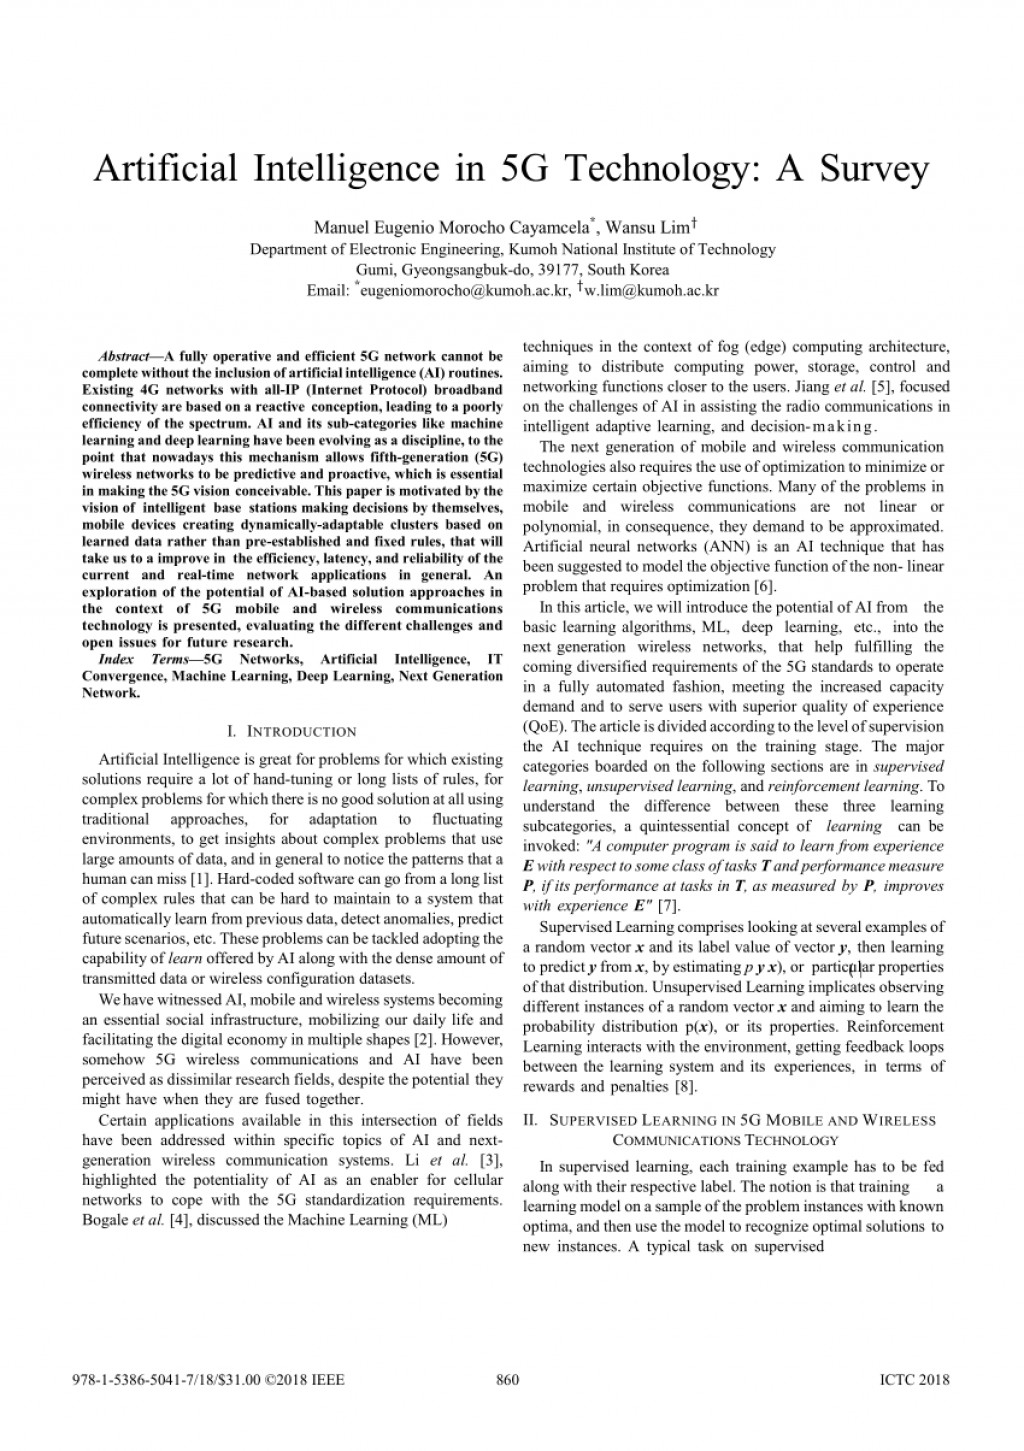 004 Artificial Intelligence Research Paper Ieee Impressive 2018 Large